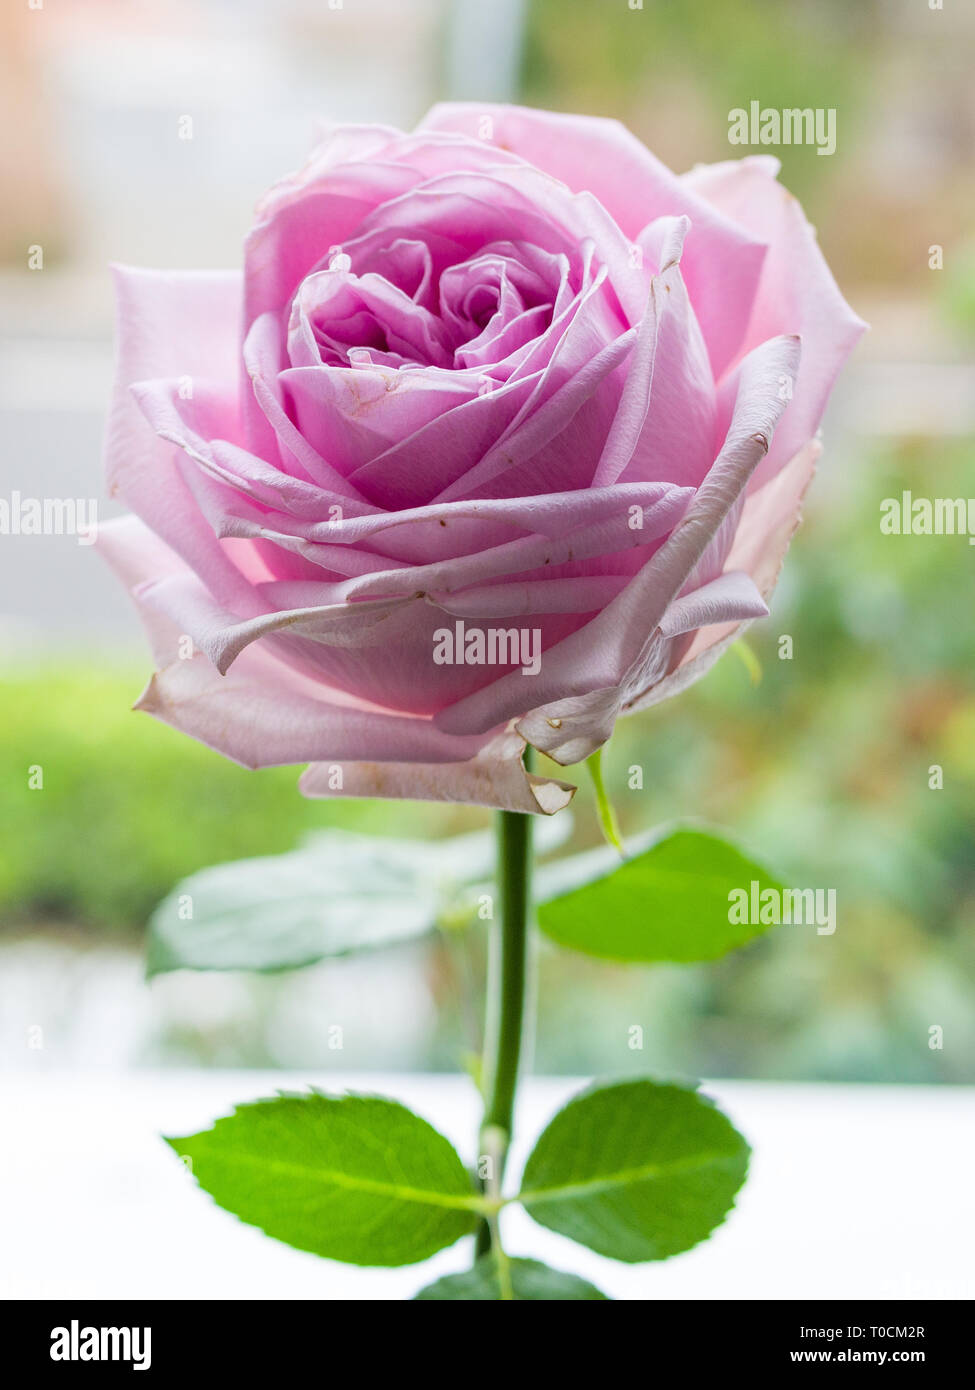 Closeup with a flowering lavender rose head. - Stock Image